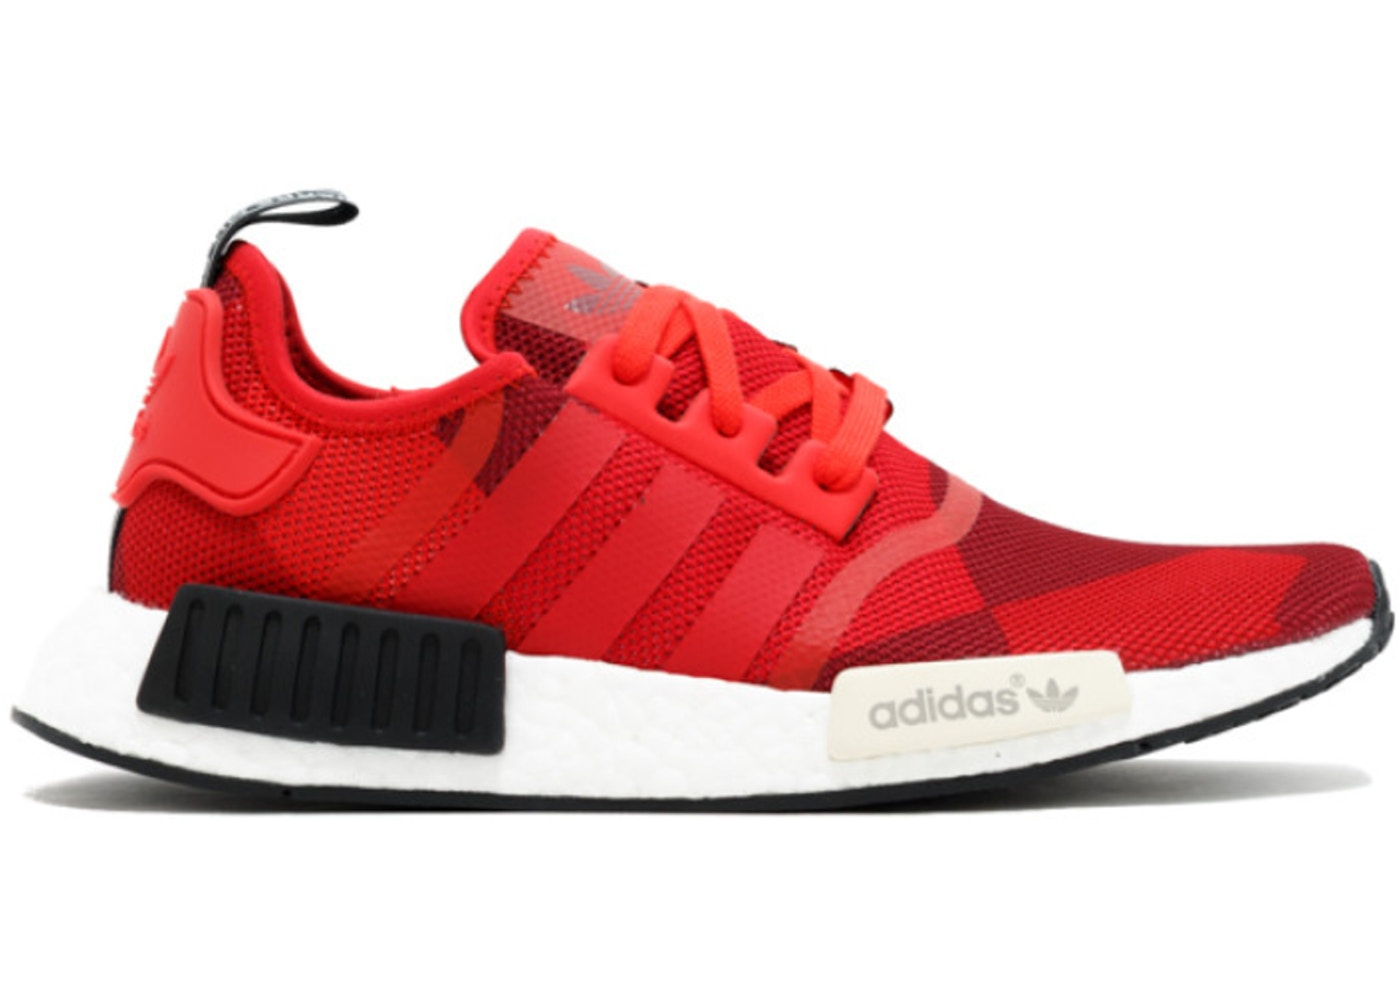 finest selection def9b 57e9c adidas NMD Shoes - Price Premium